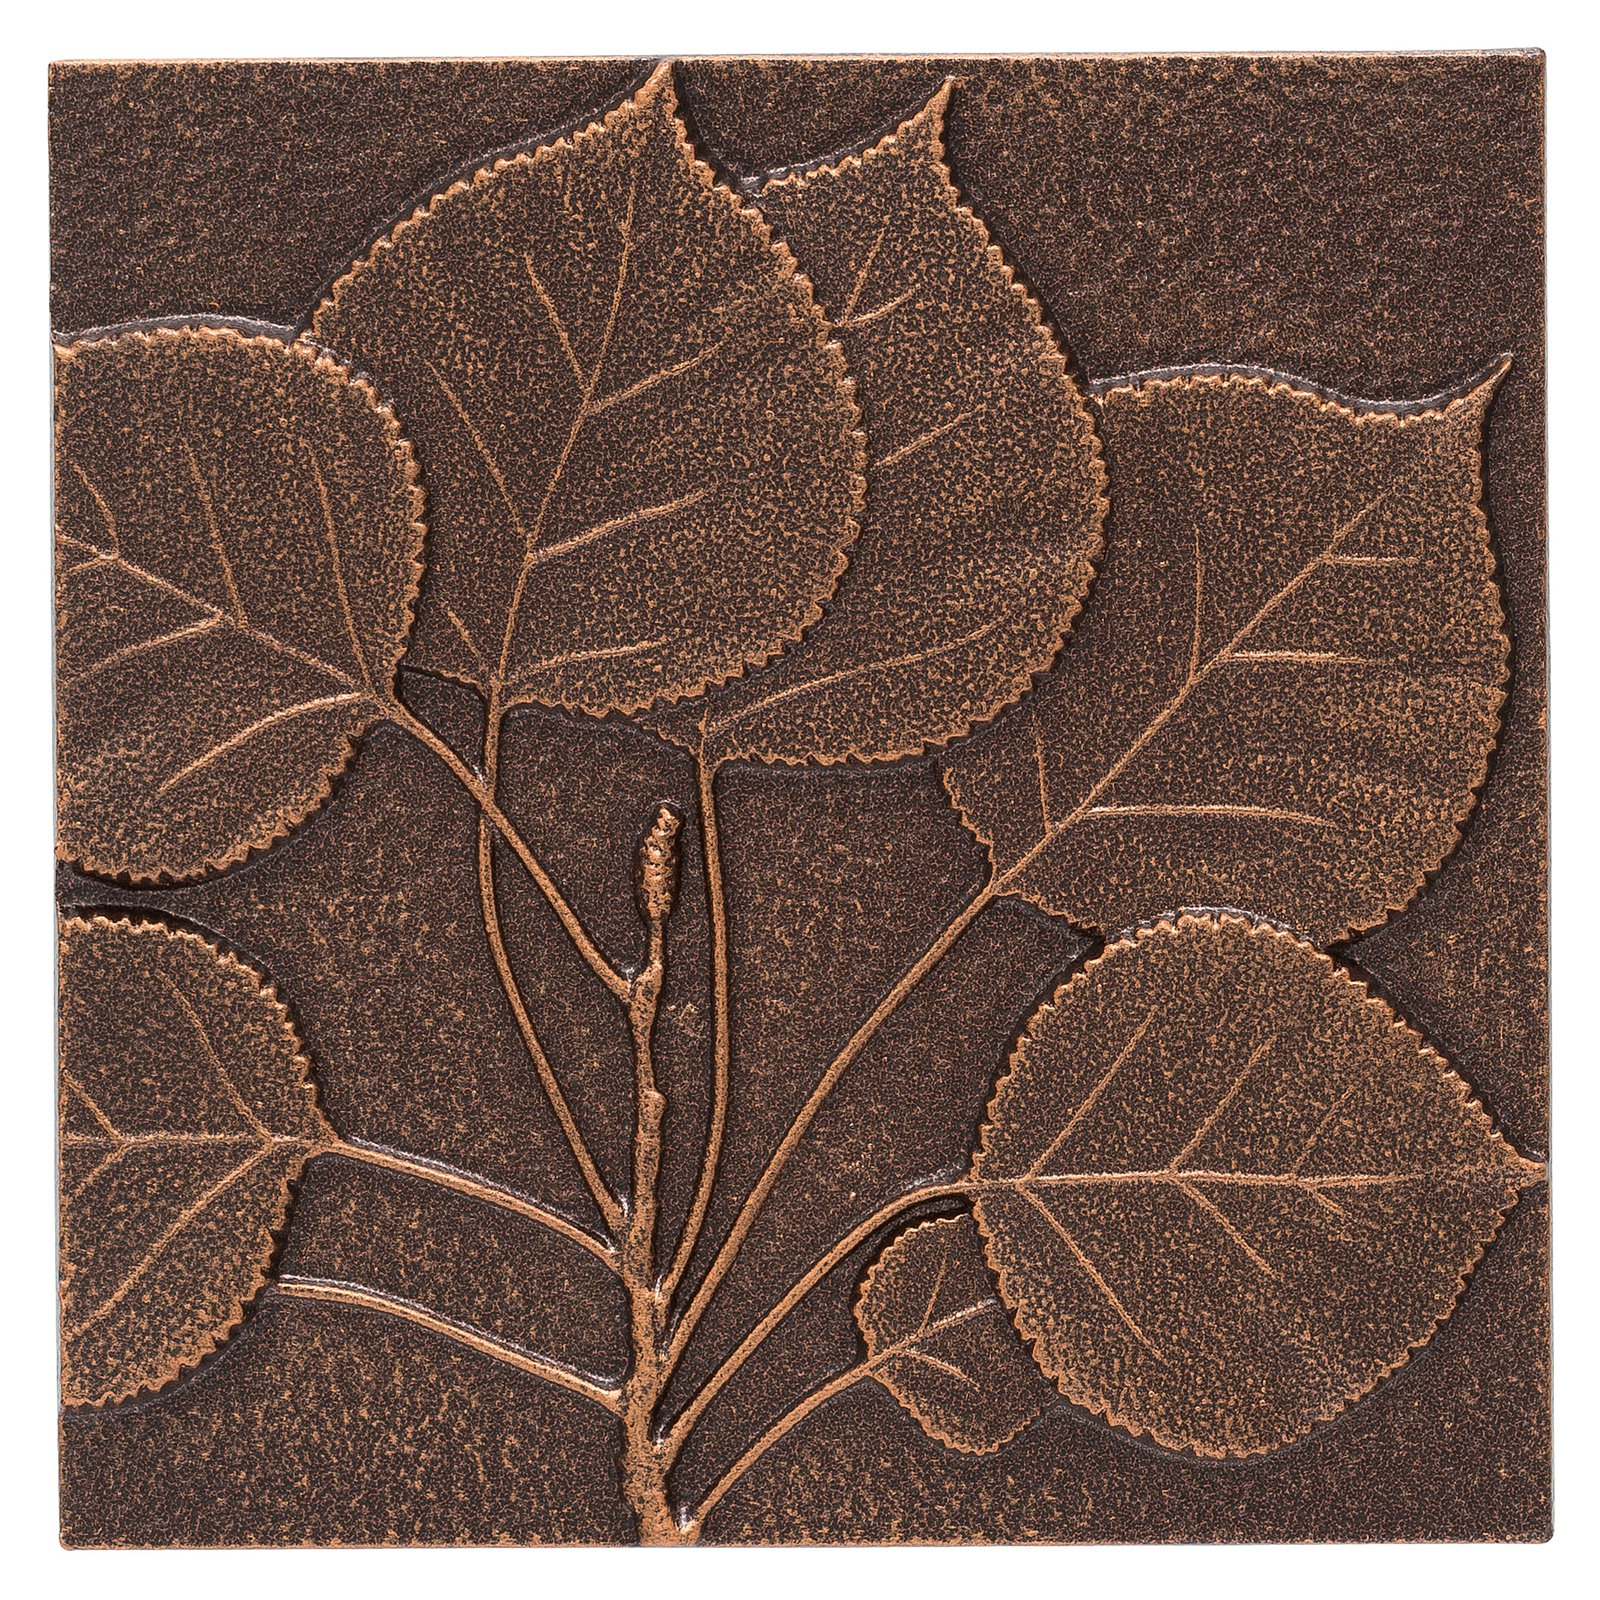 Aspen Leaf Wall Decor